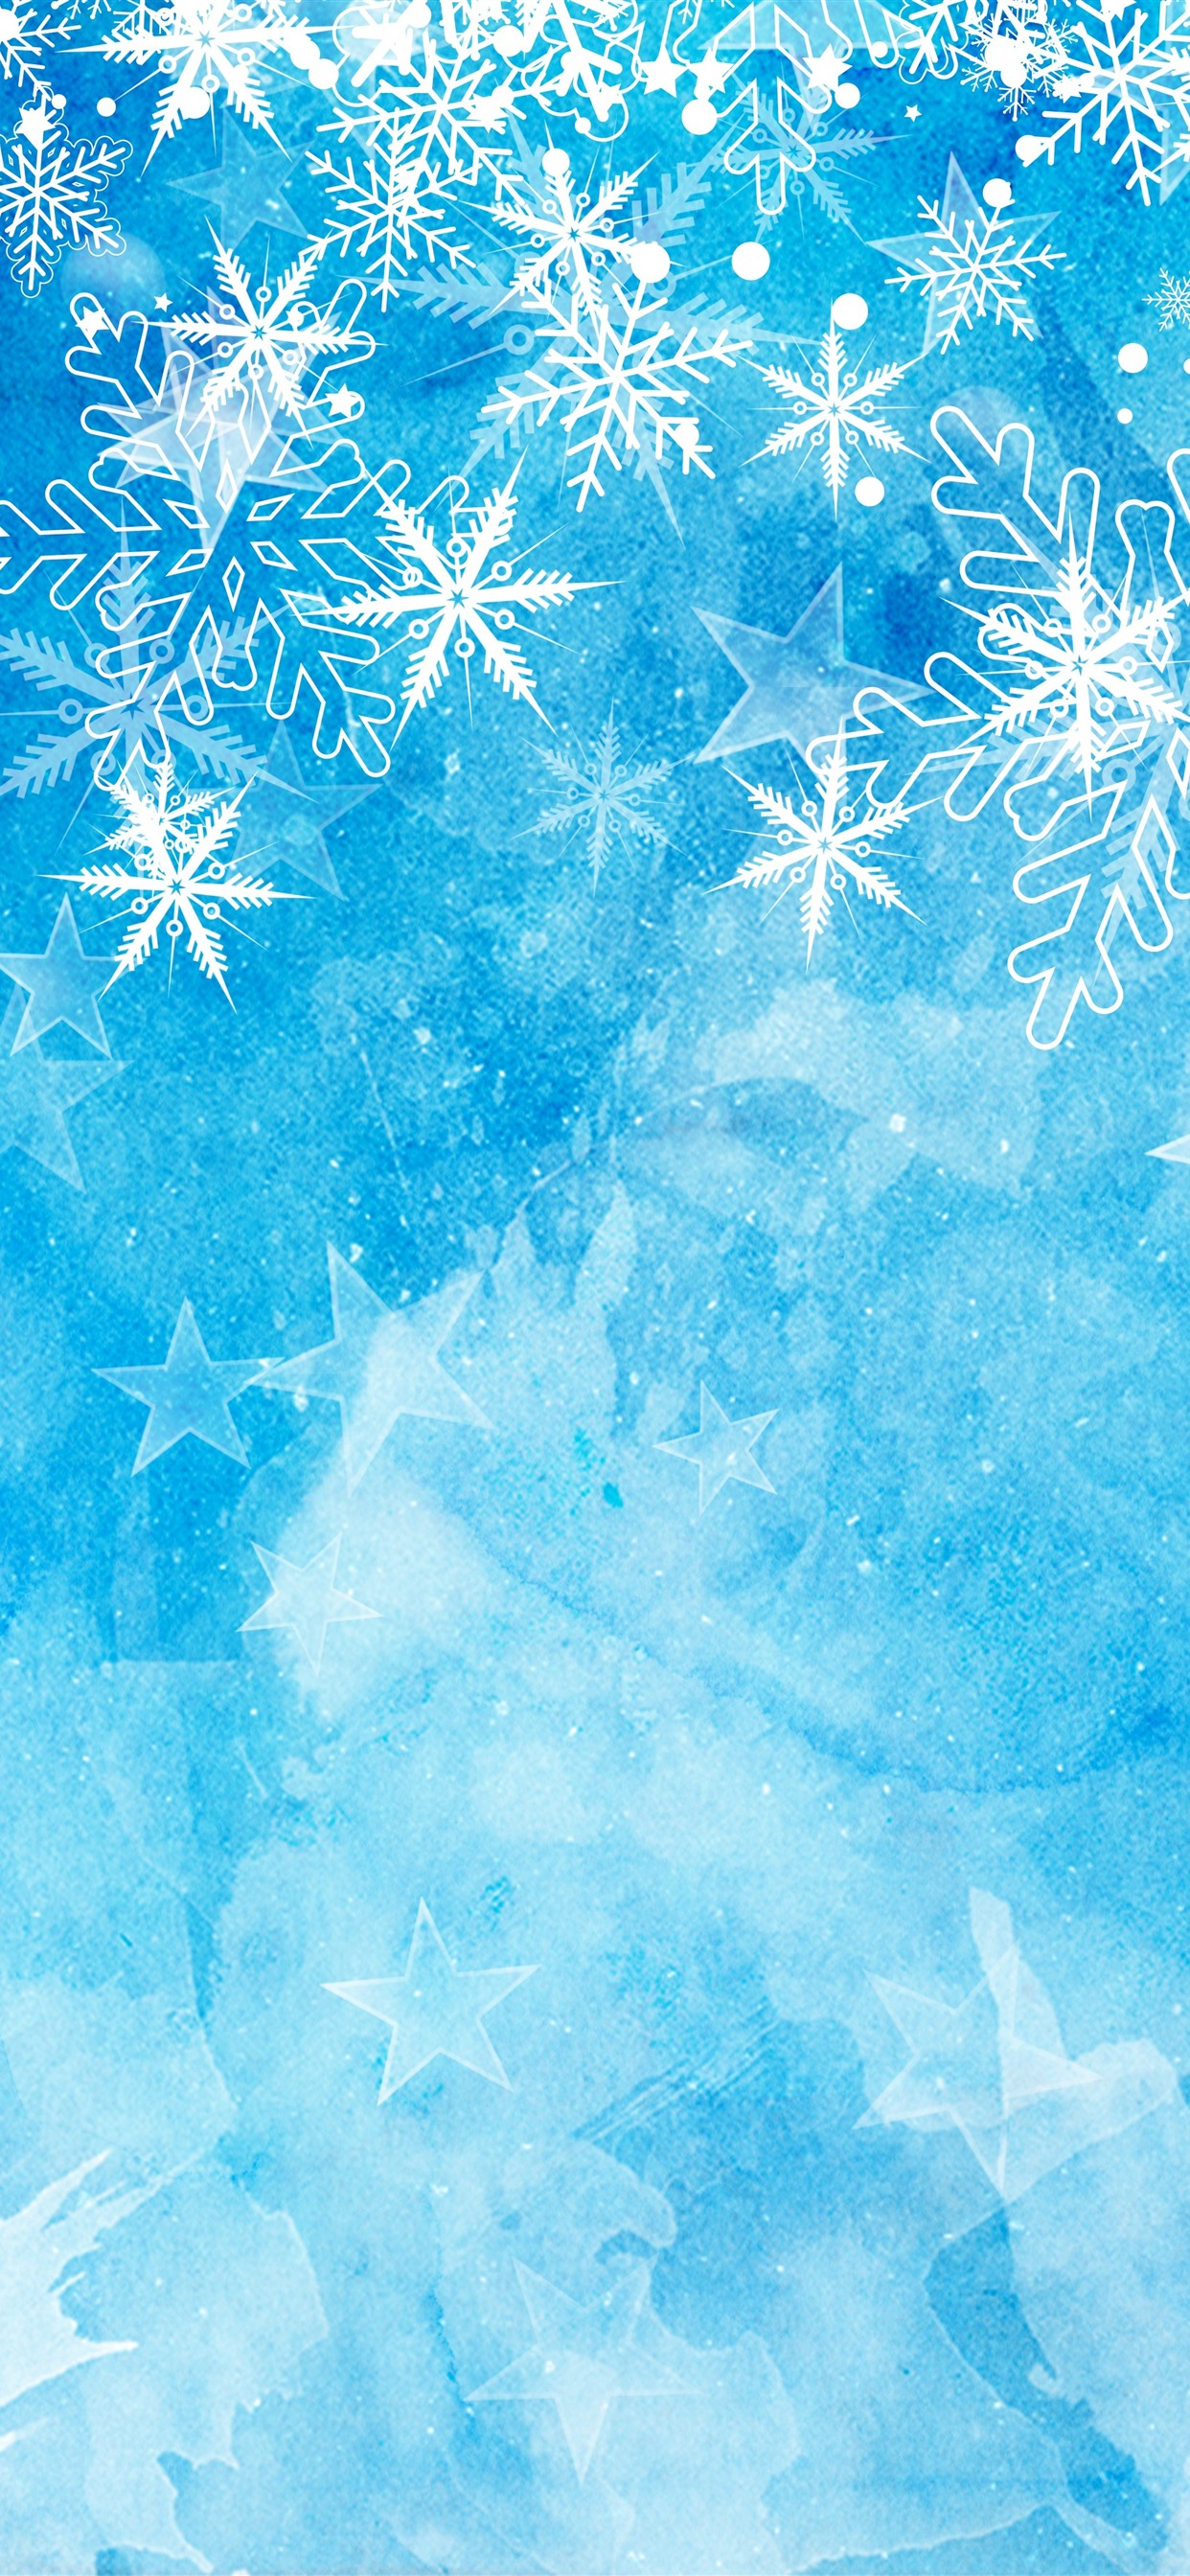 Snowflakes Blue Background Christmas Theme 1242x2688 Iphone 11 Pro Xs Max Wallpaper Background Picture Image